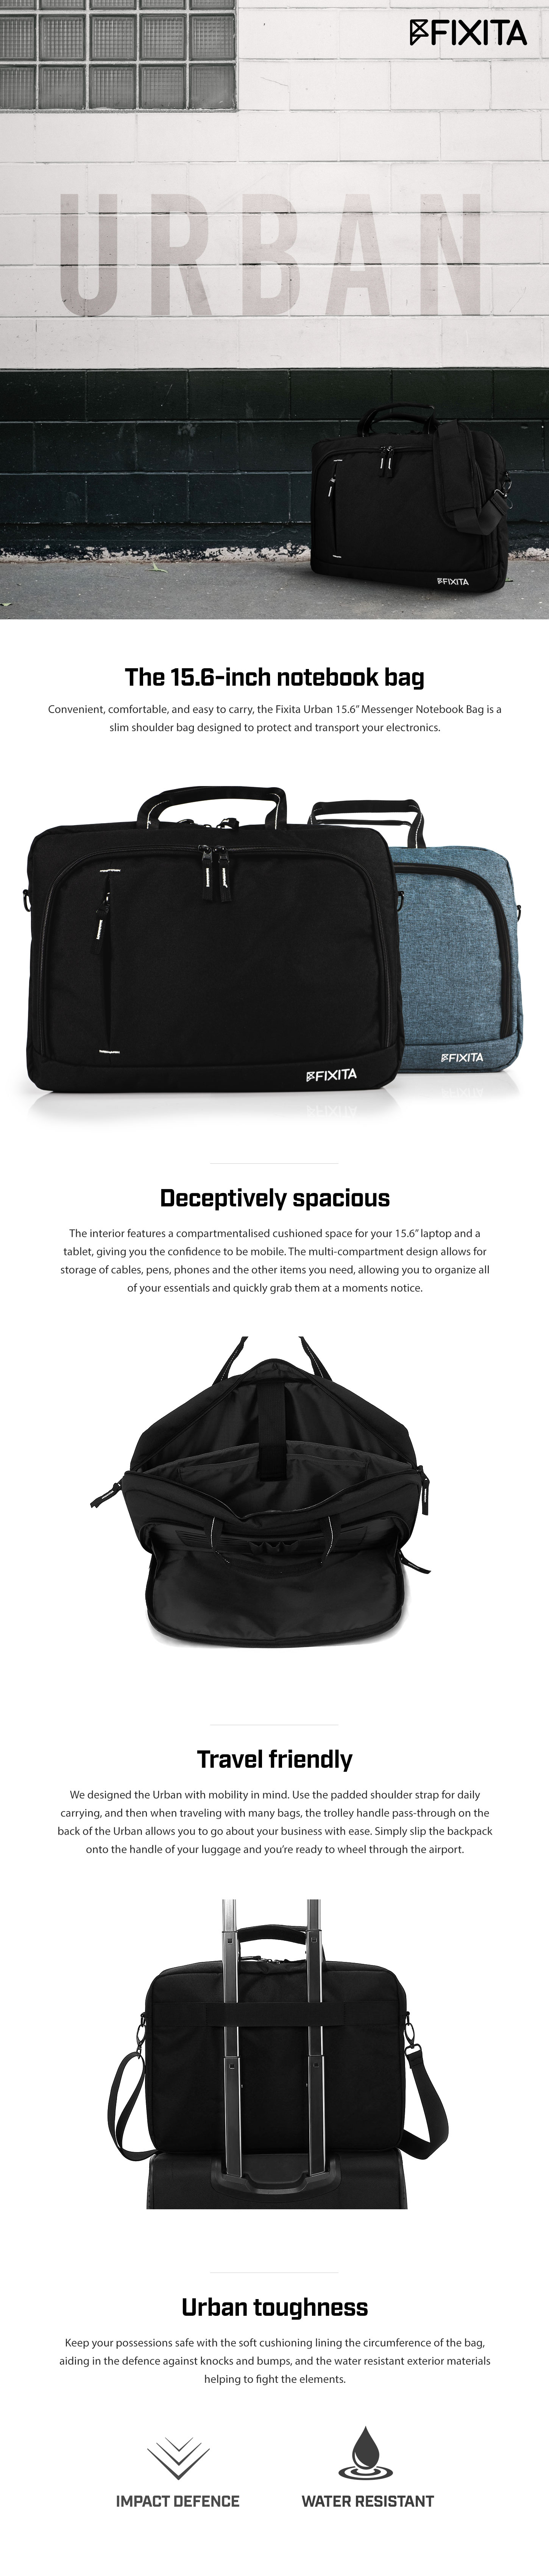 """A large marketing image providing additional information about the product Fixita Urban 15.6"""" Grey Messenger Notebook Bag - Additional alt info not provided"""